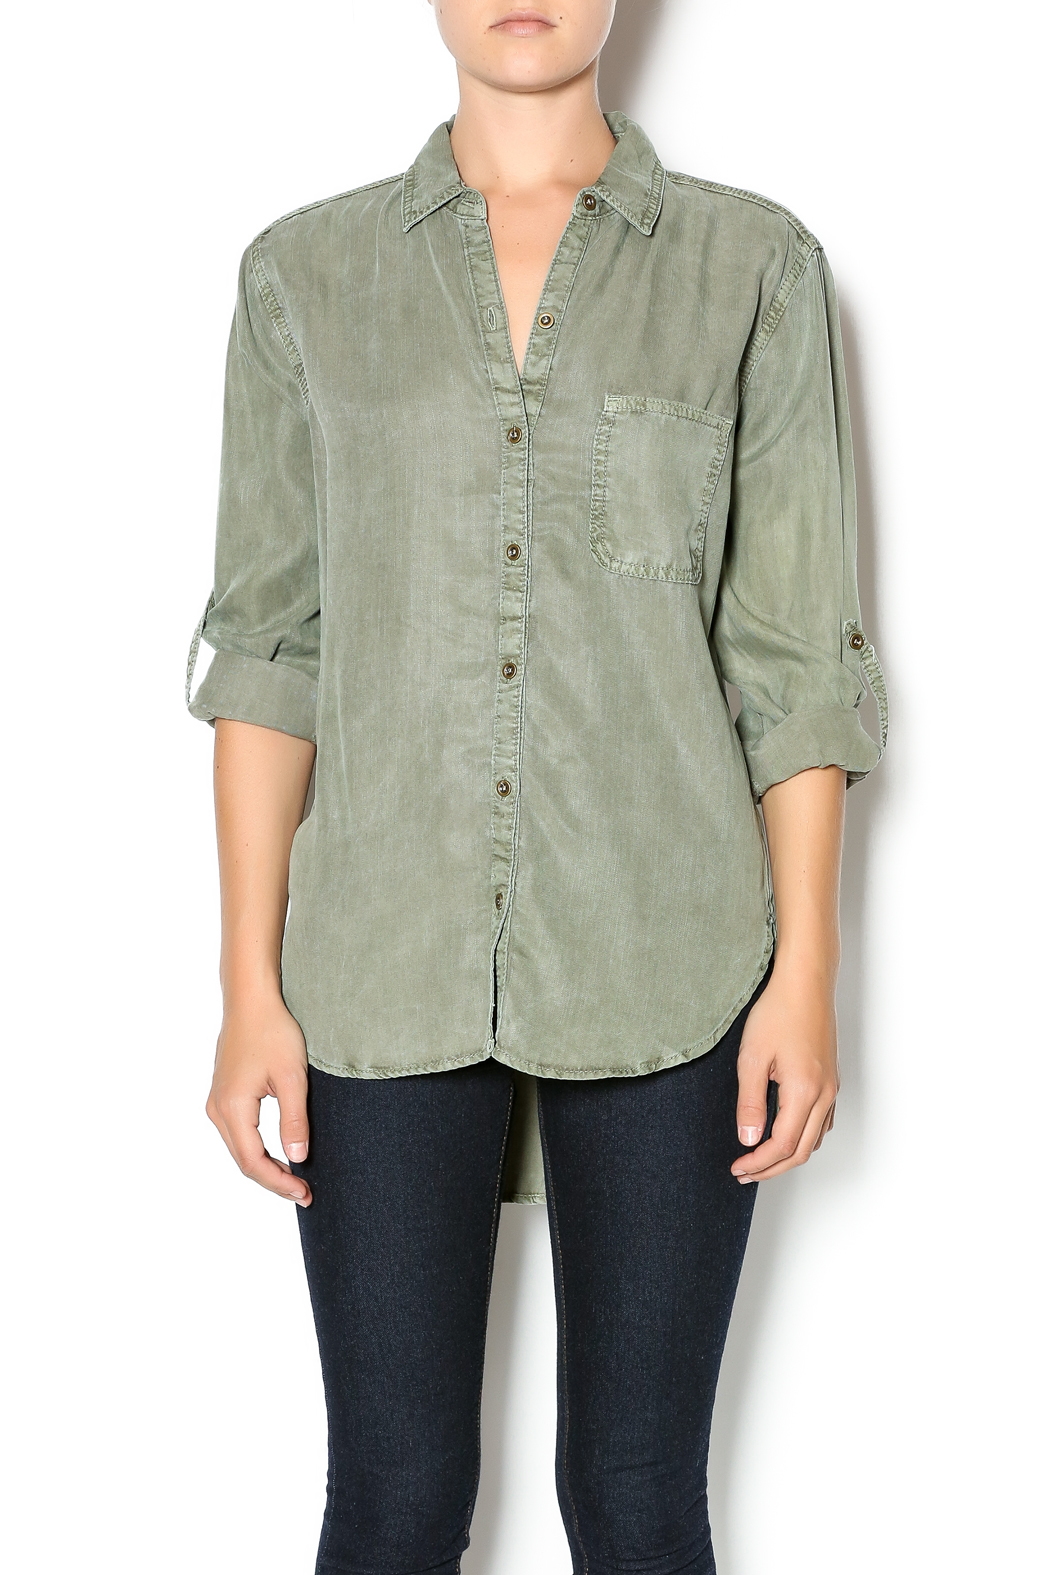 SneekPeak Olive Button Down Shirt from Miami by Allie & Chica ...